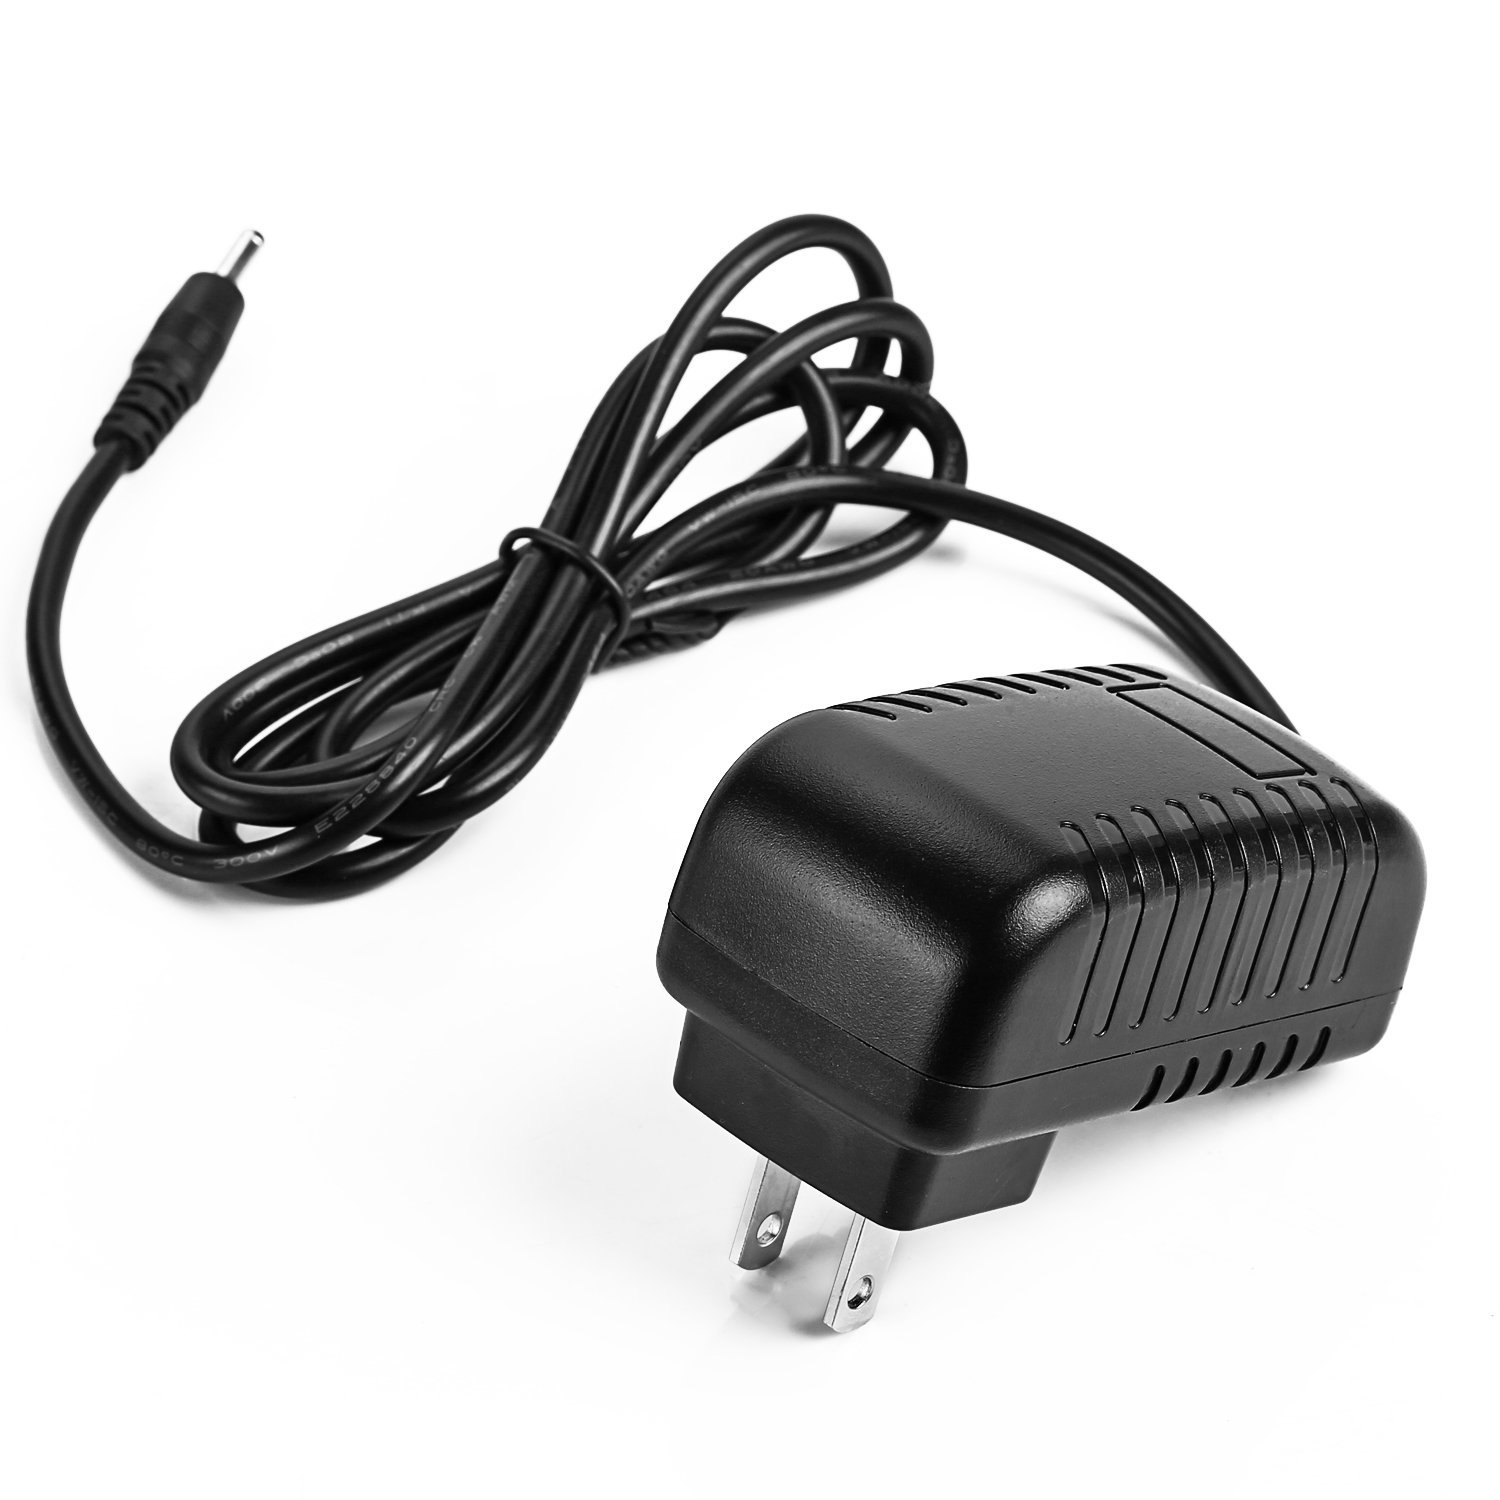 atolla US standard adaptor External Power Supply 15W ( 5V/3A) AC / DC Adapter for USB Hub, 3.5 x 1.35 mm plug center positive by Atolla (Image #1)